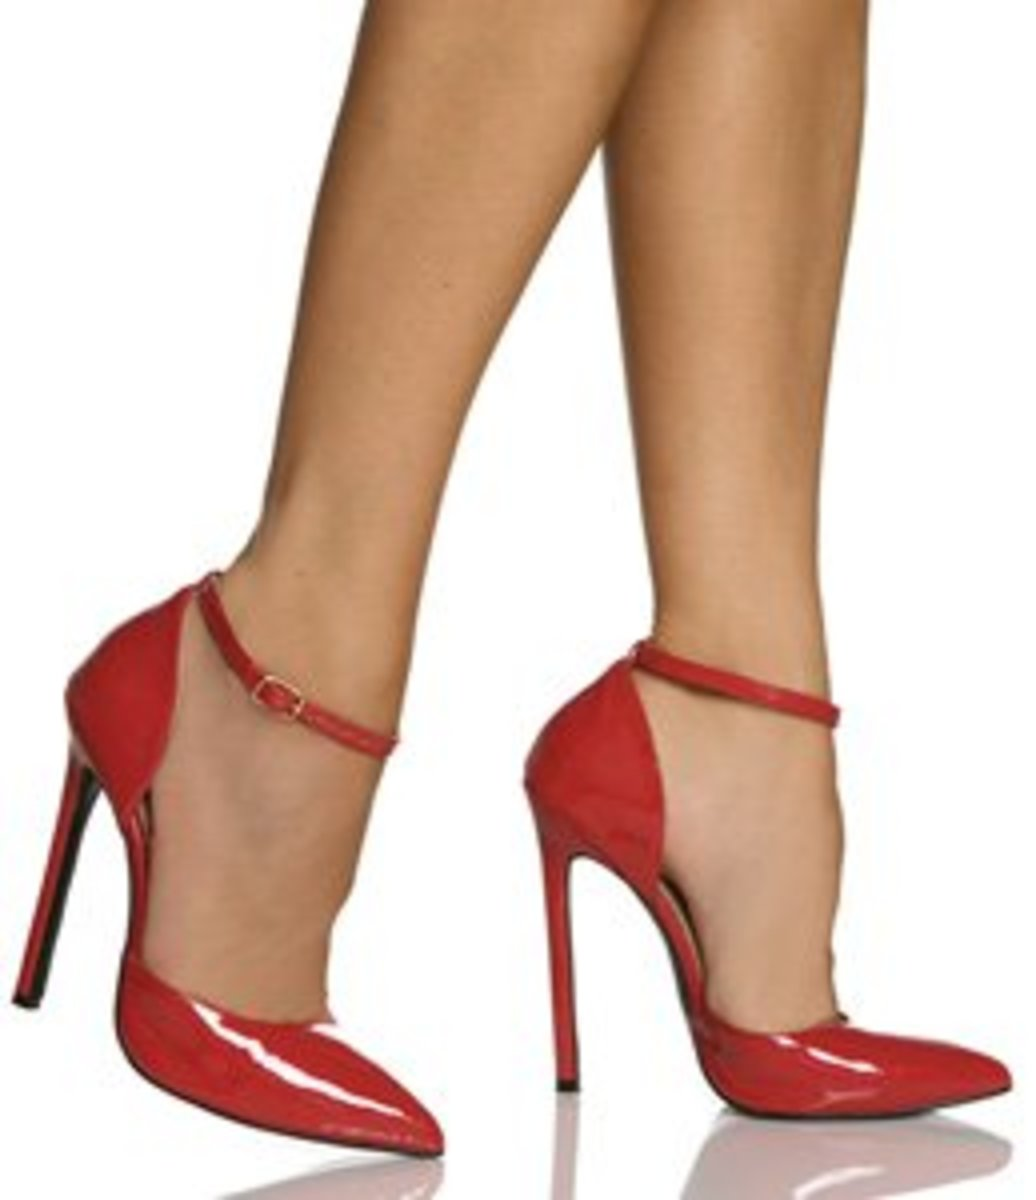 5-places-to-find-super-sexy-high-heels-for-men